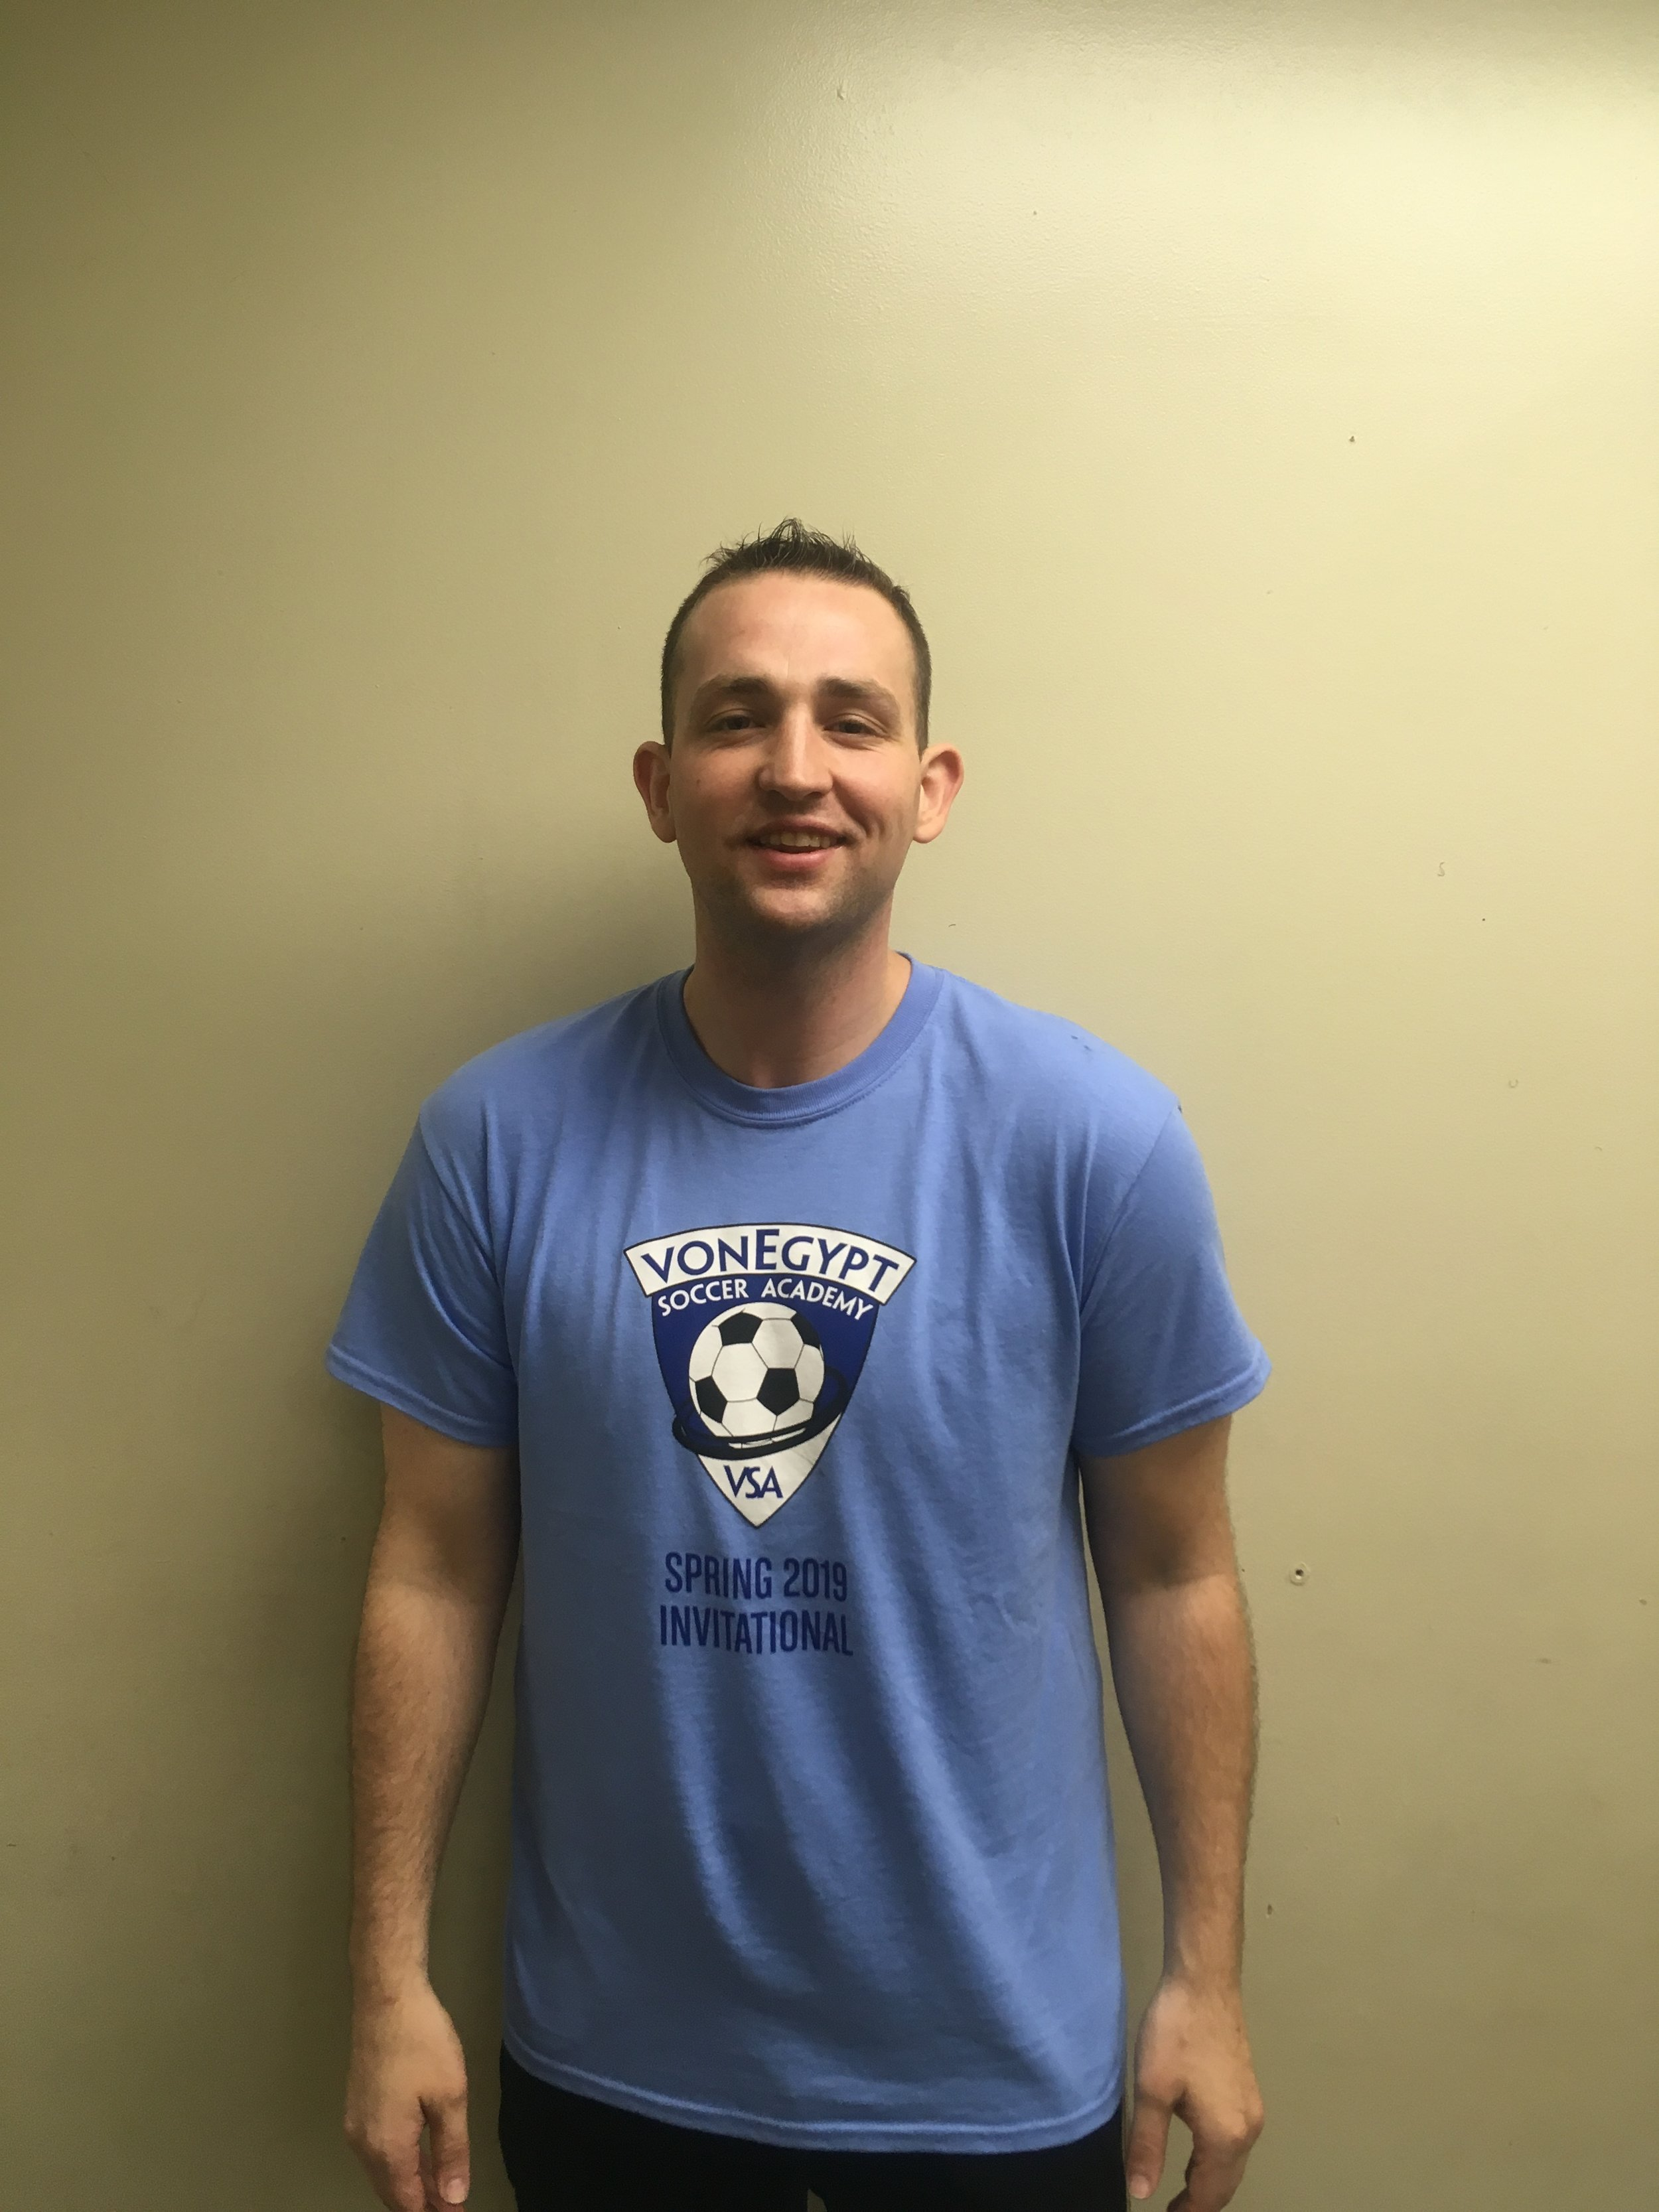 Graham Fortunato - Graham Fortunato is currently the Head Girl's Varsity Coach at Our Lady of Lourdes HS. He most recently won 2018 League Coach of the Year and led the Lady Warriors to their first league title in 10 years. He is a USSF certified Coach who is staffed with the Olympic Development Program. In addition to that, he trains local soccer teams in the Lagrange, Poughkeepsie, and Hyde Park Soccer club. He was a 4 year starter at Pearl River High School. He went on to play for the Newtown Pride FC, a team that has qualified for the Lamar Hunt US Open Soccer Cup for the past 4 years, consecutively.